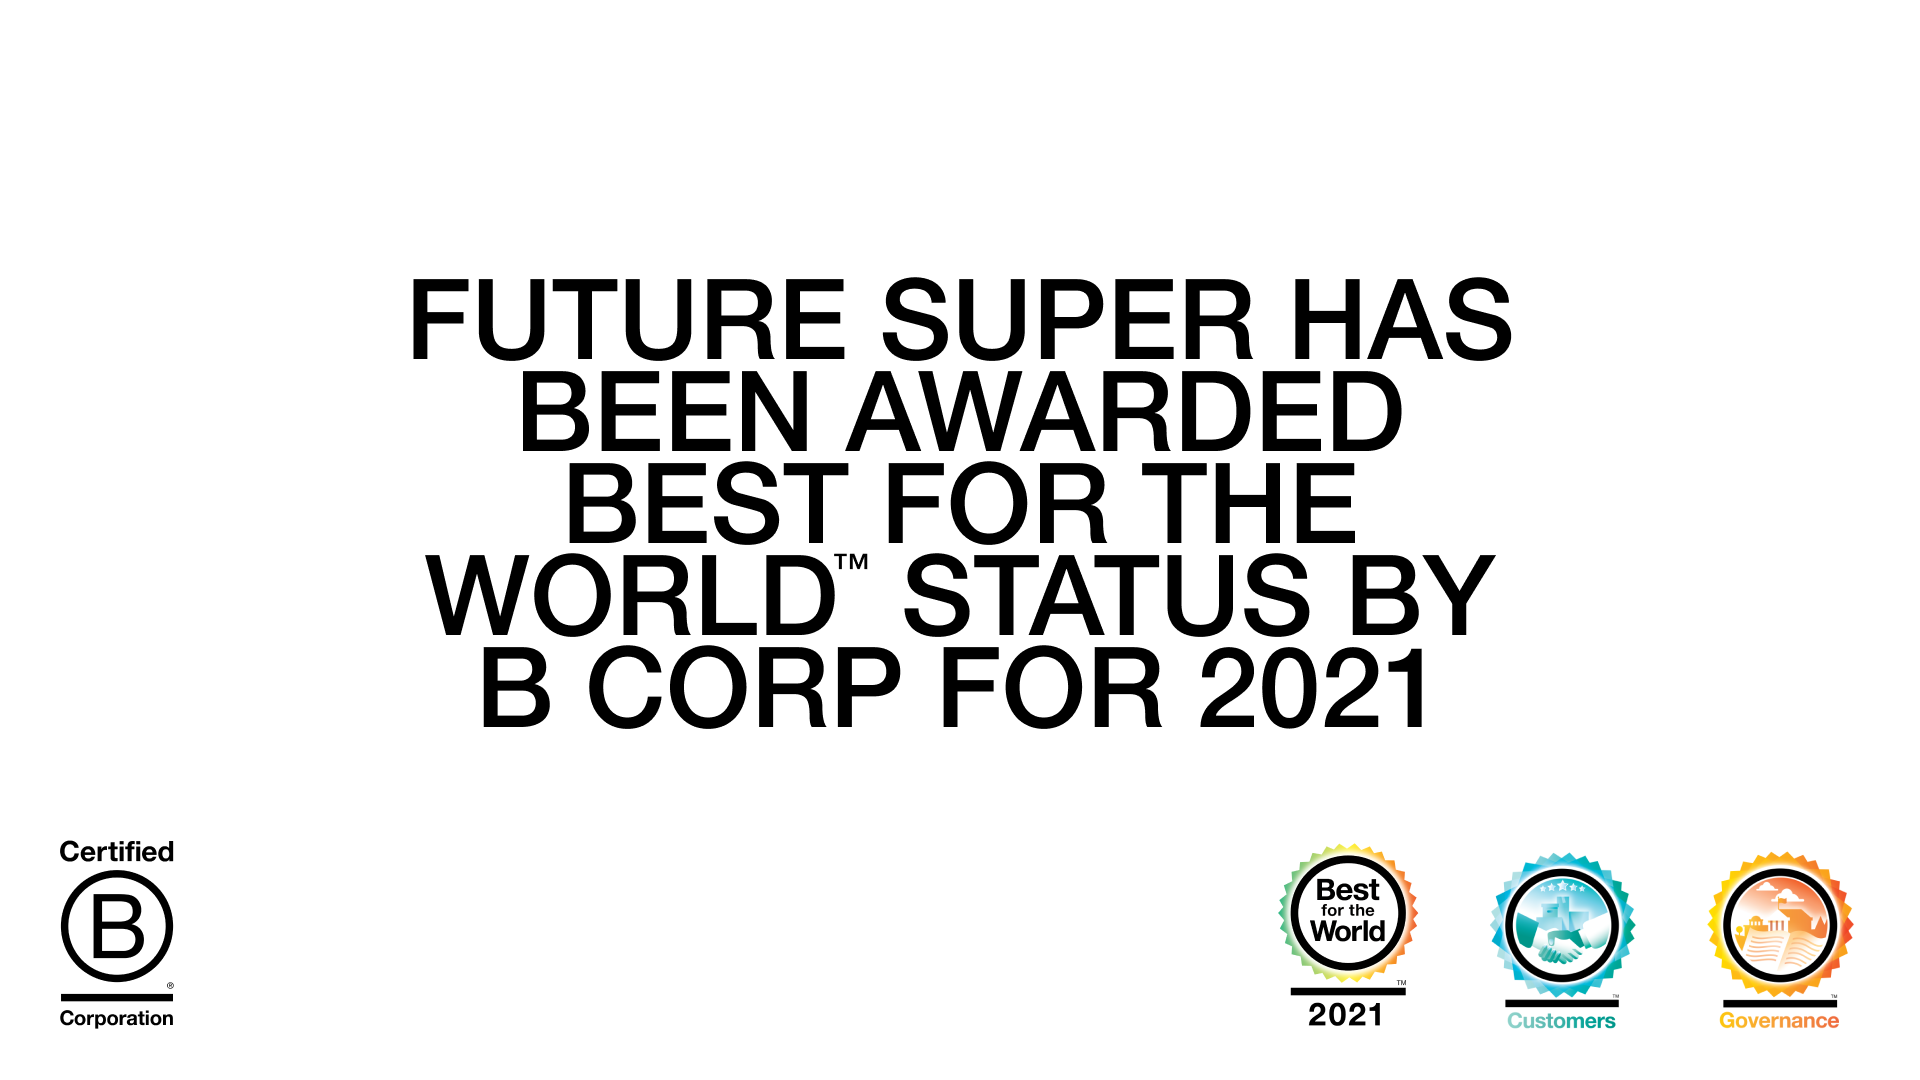 We're a Best for the World B Corp